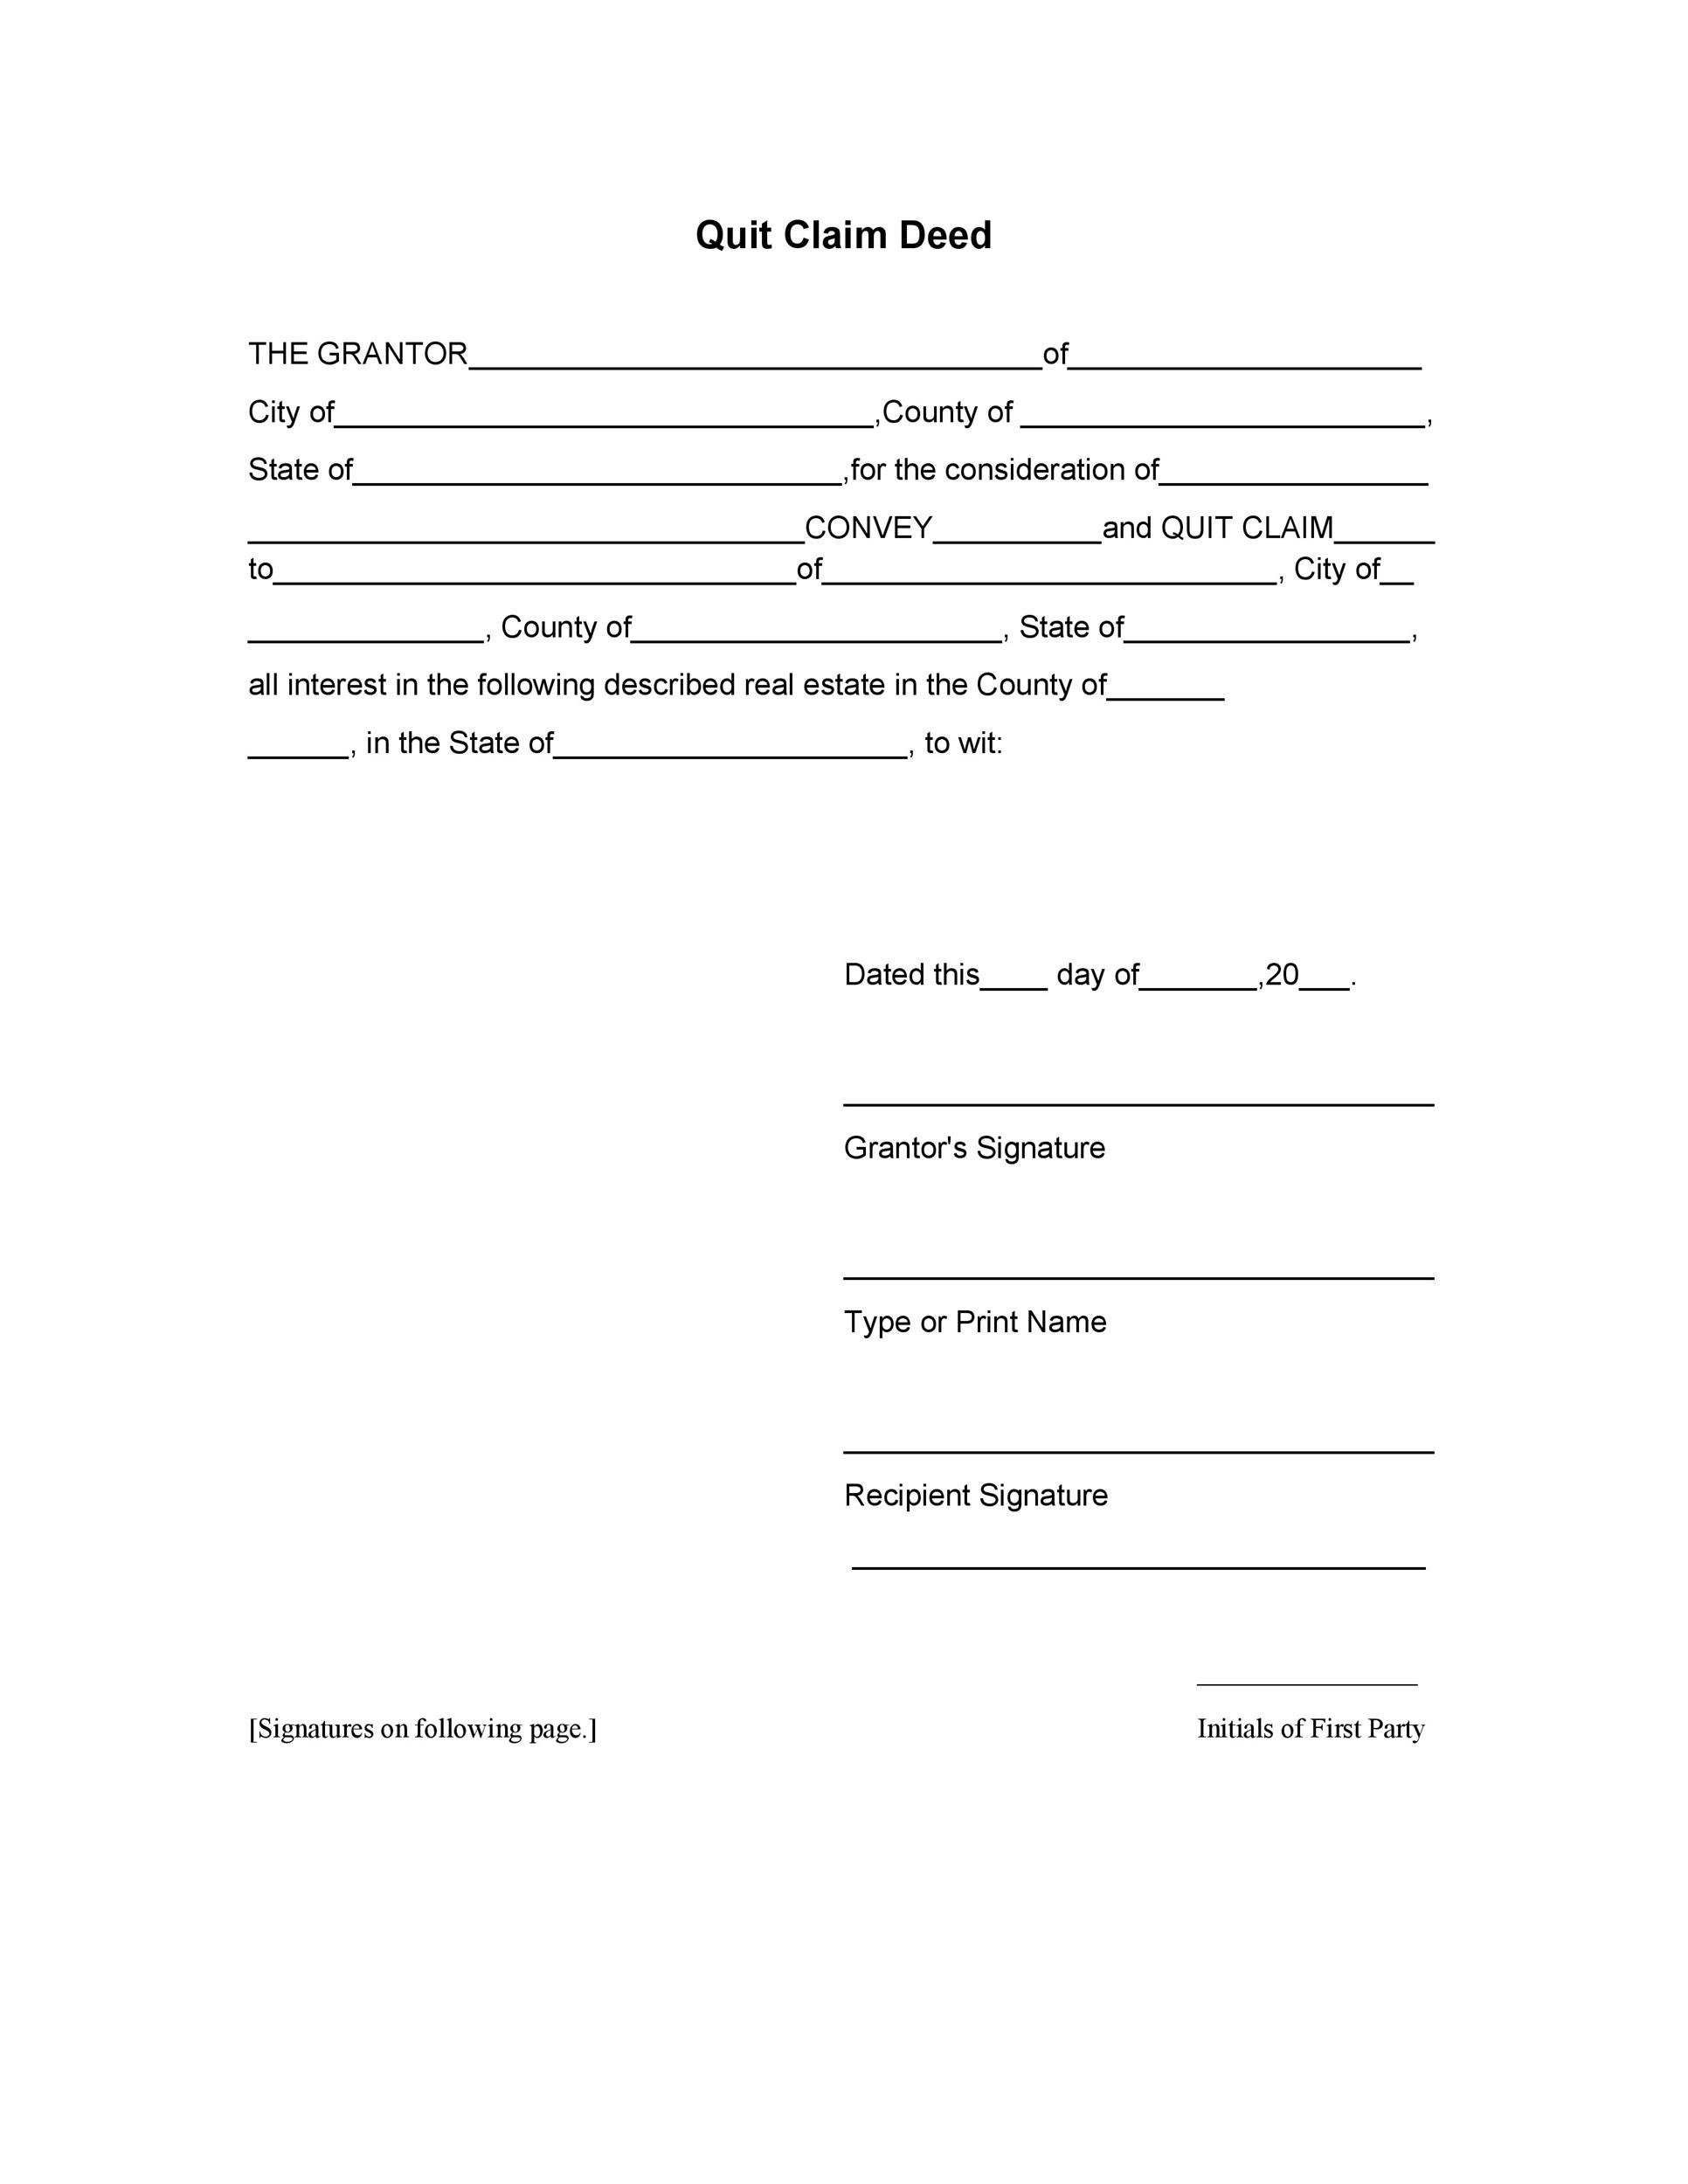 Free Quit Claim Deed Template 35